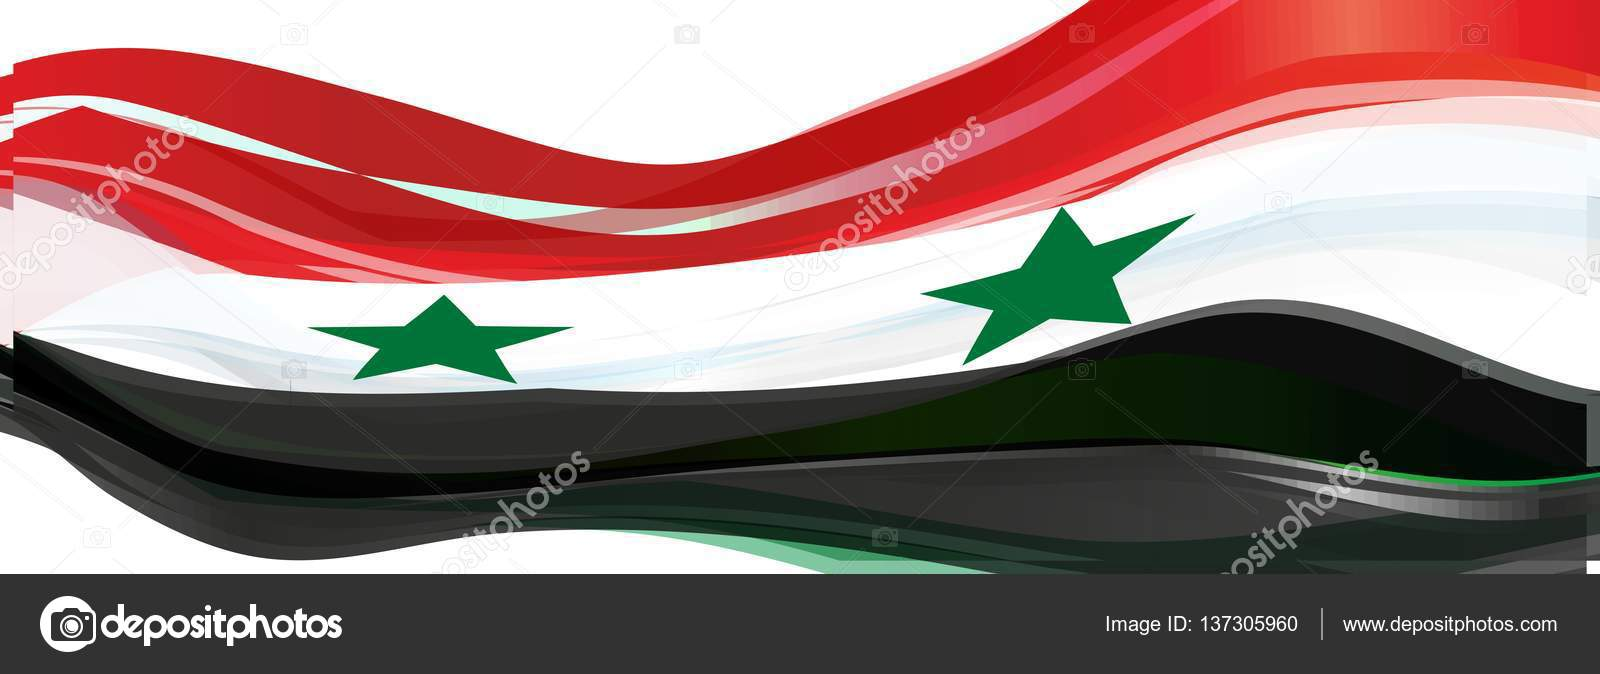 Red White Black With Green Stars On The Flag Of The Syrian Arab